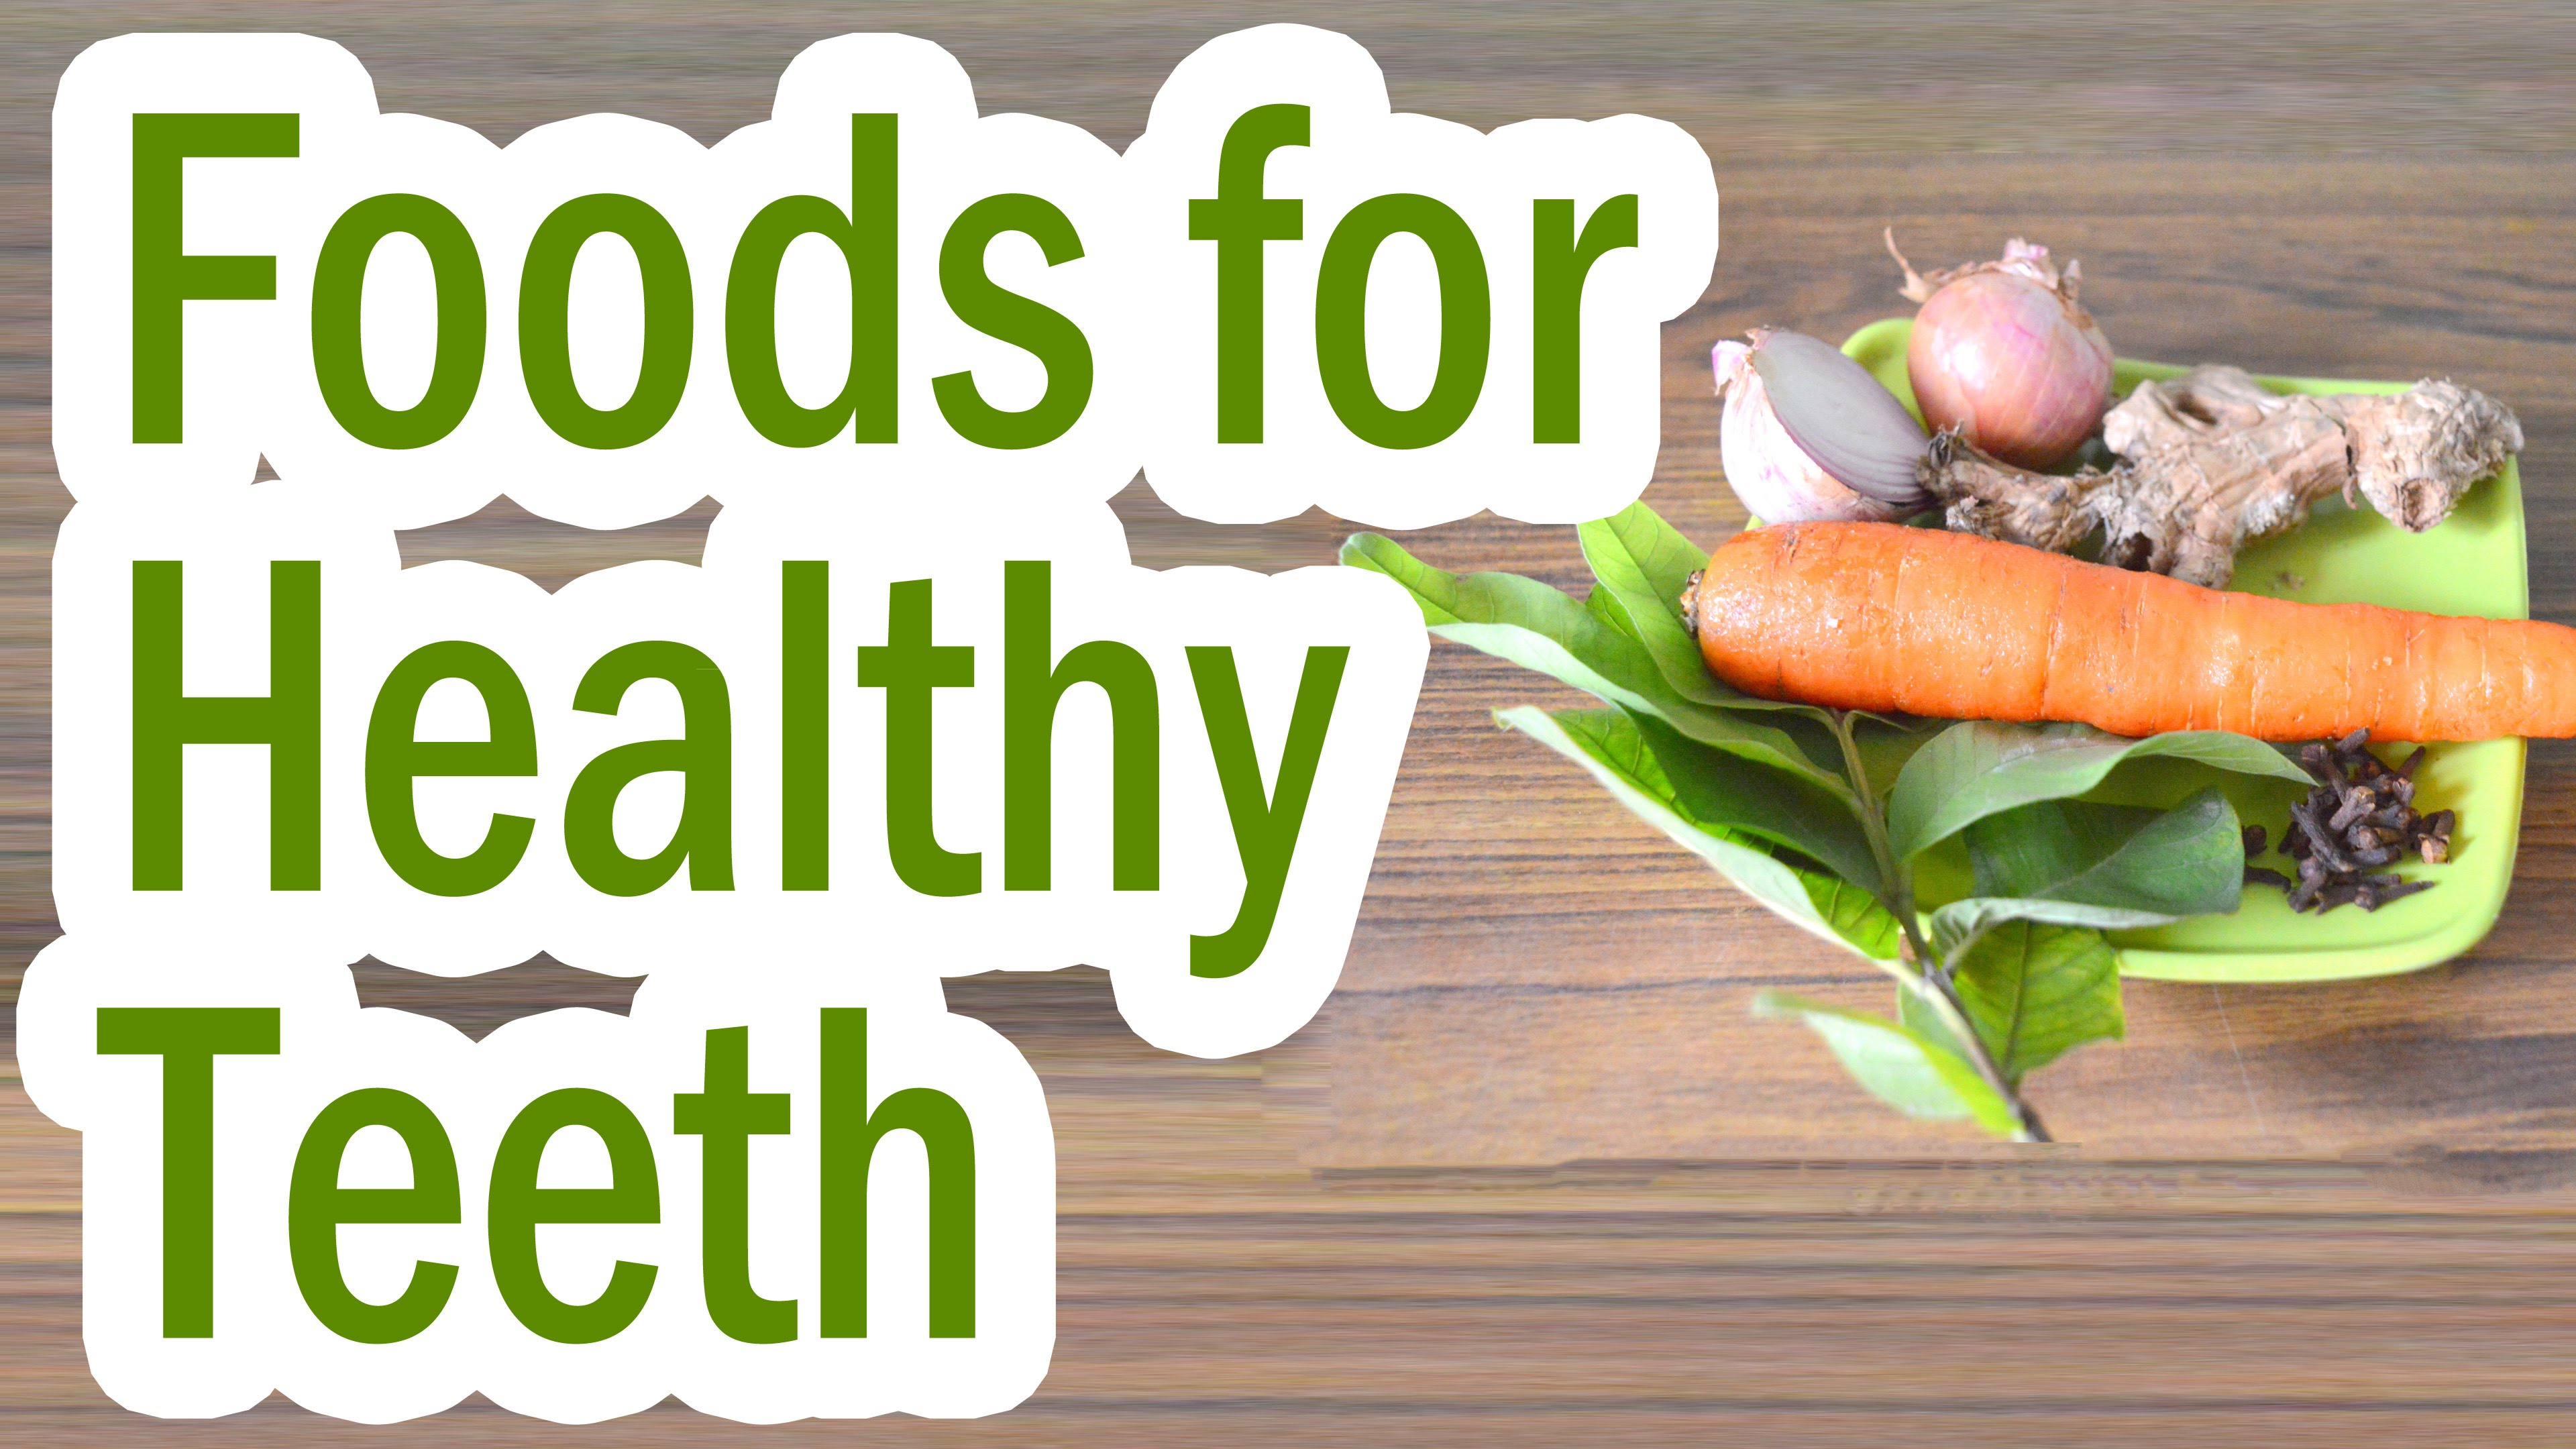 Food For Your Teeth: The Good, the Bad and the Ugly!